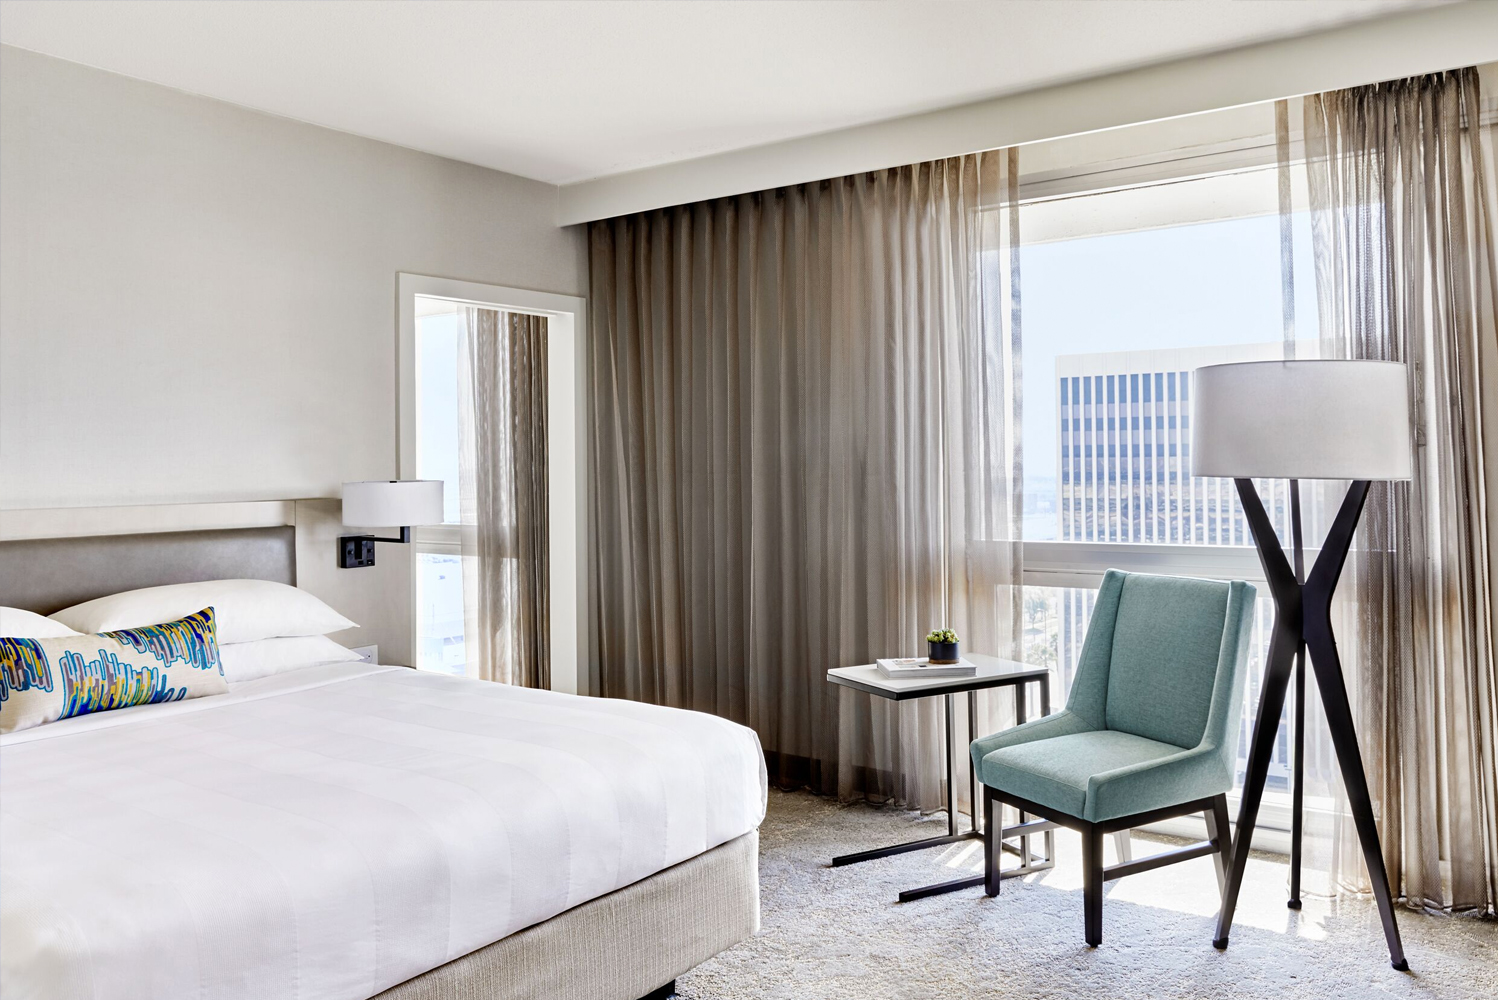 LAX Marriott earlier completed the first phase of a property-wide renovation.